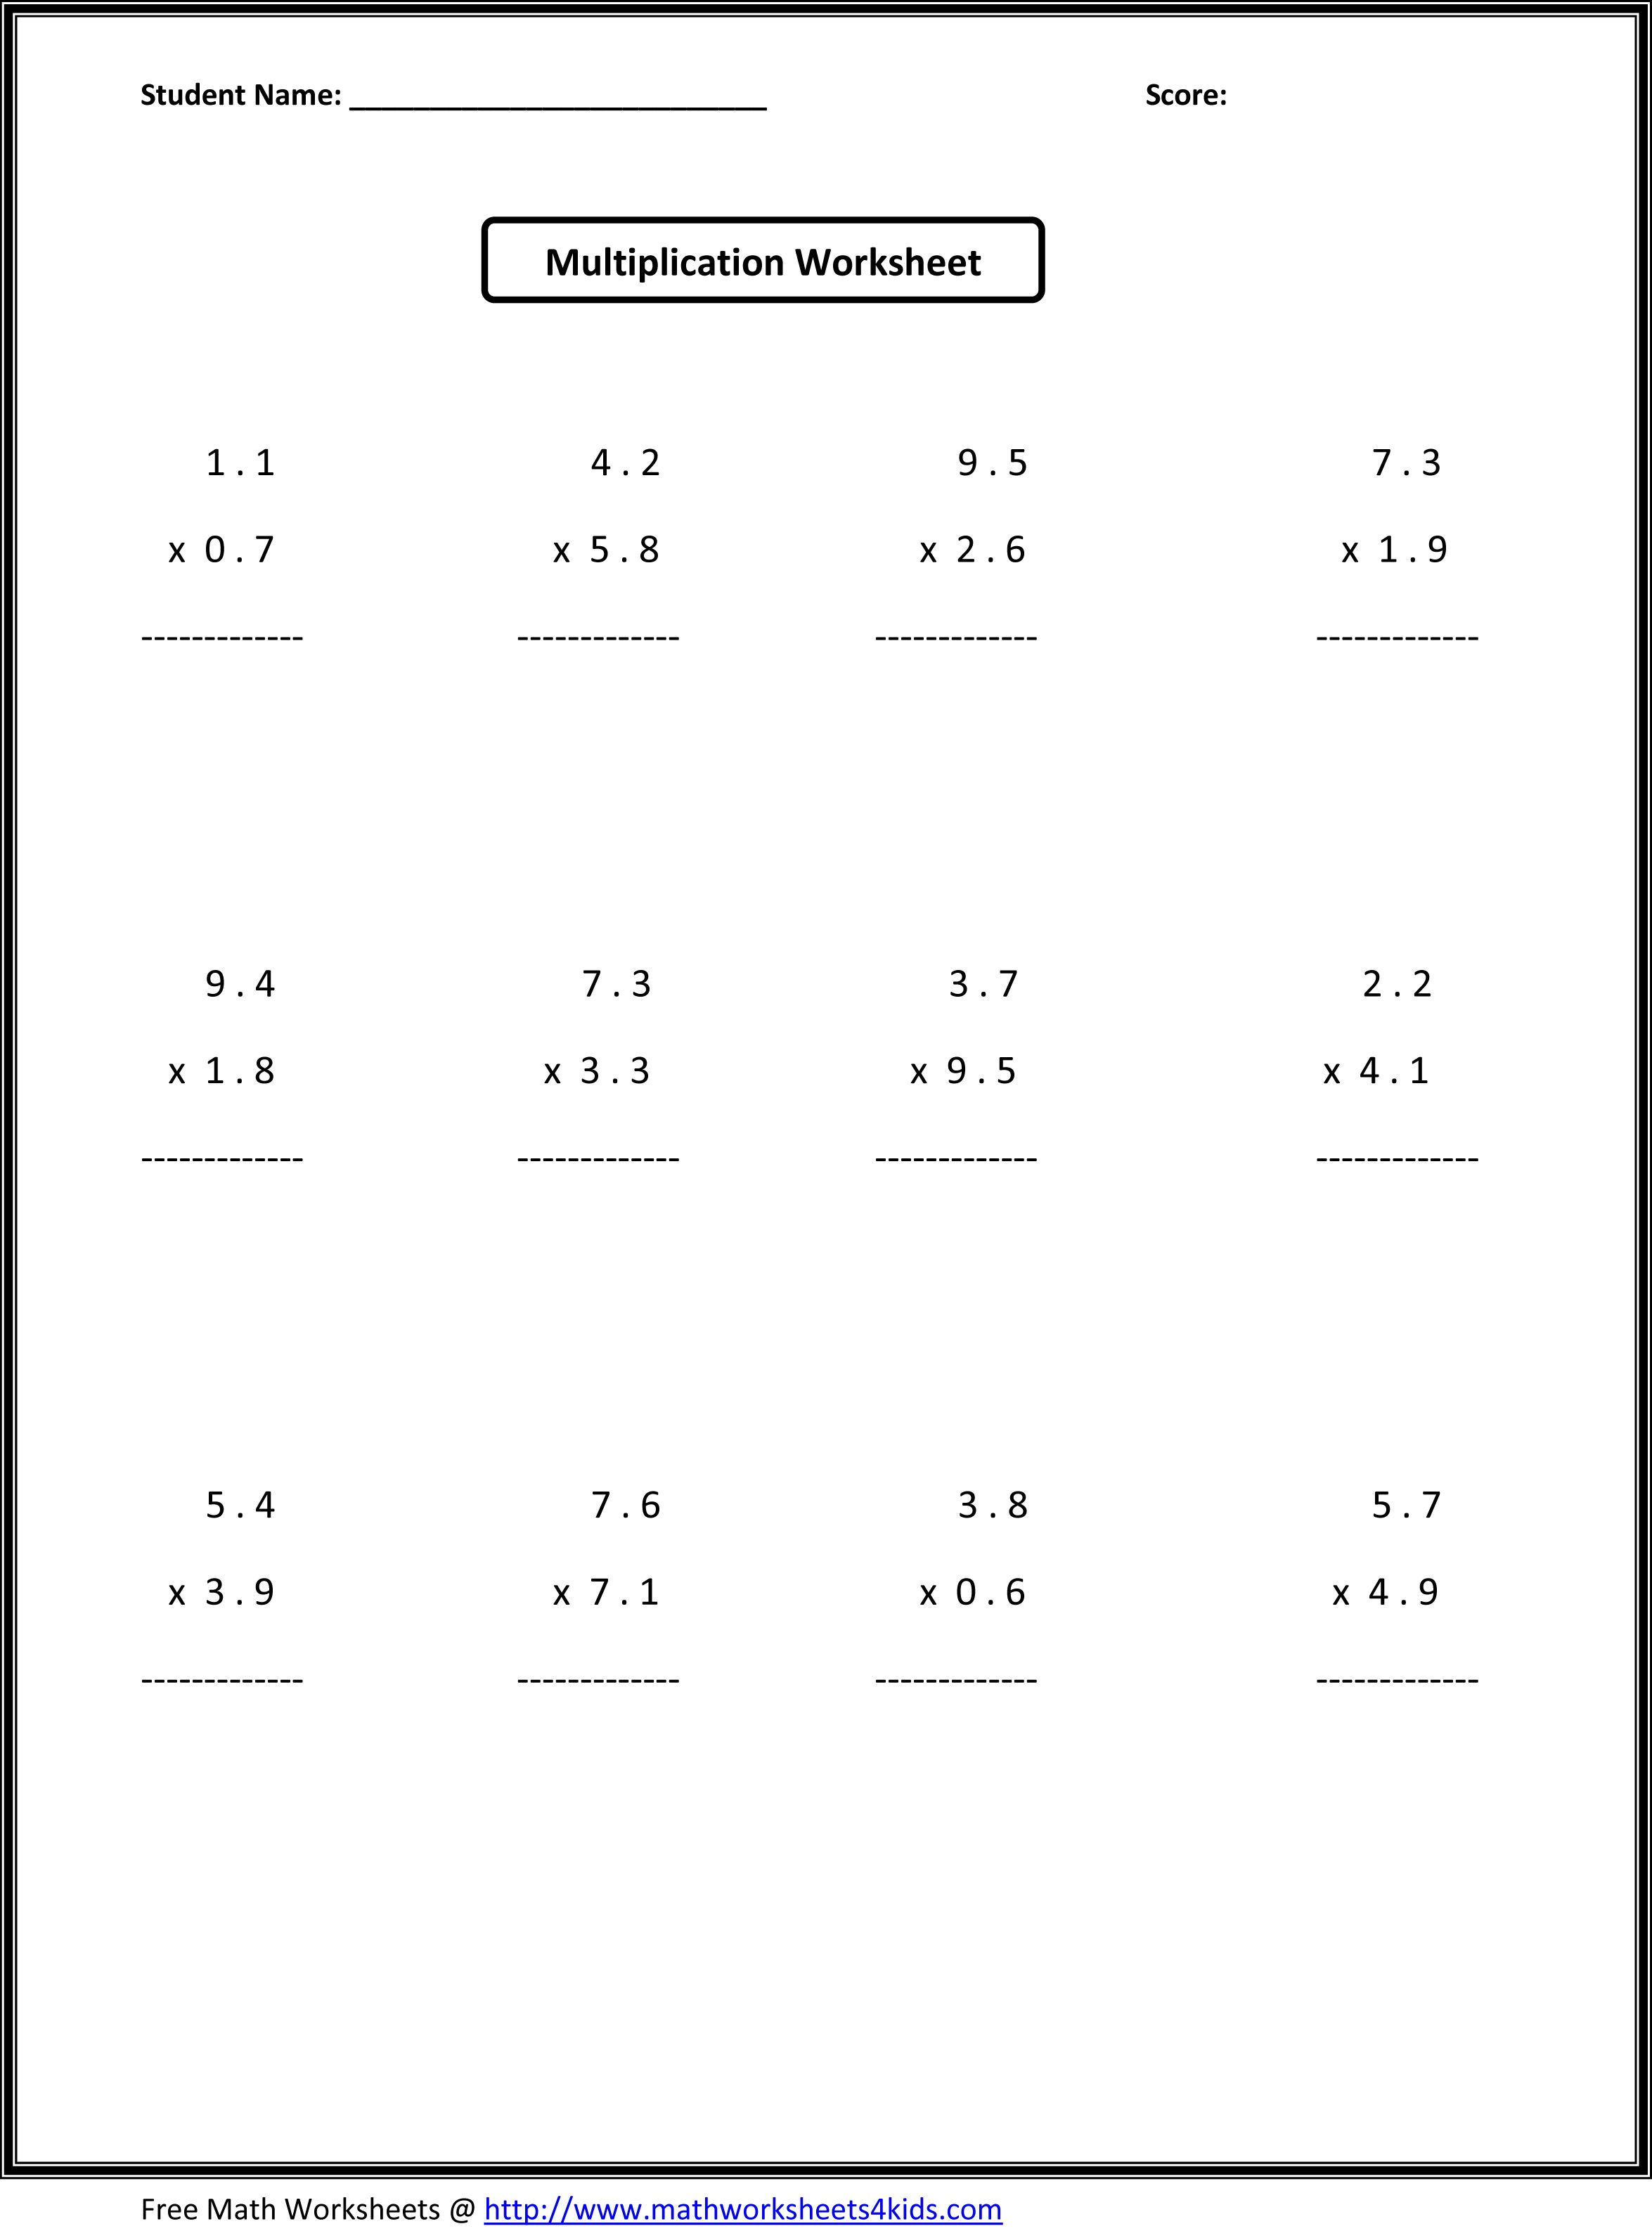 math worksheet : 1000 images about math on pinterest  7th grade math worksheets  : Math Worksheets Answer Key